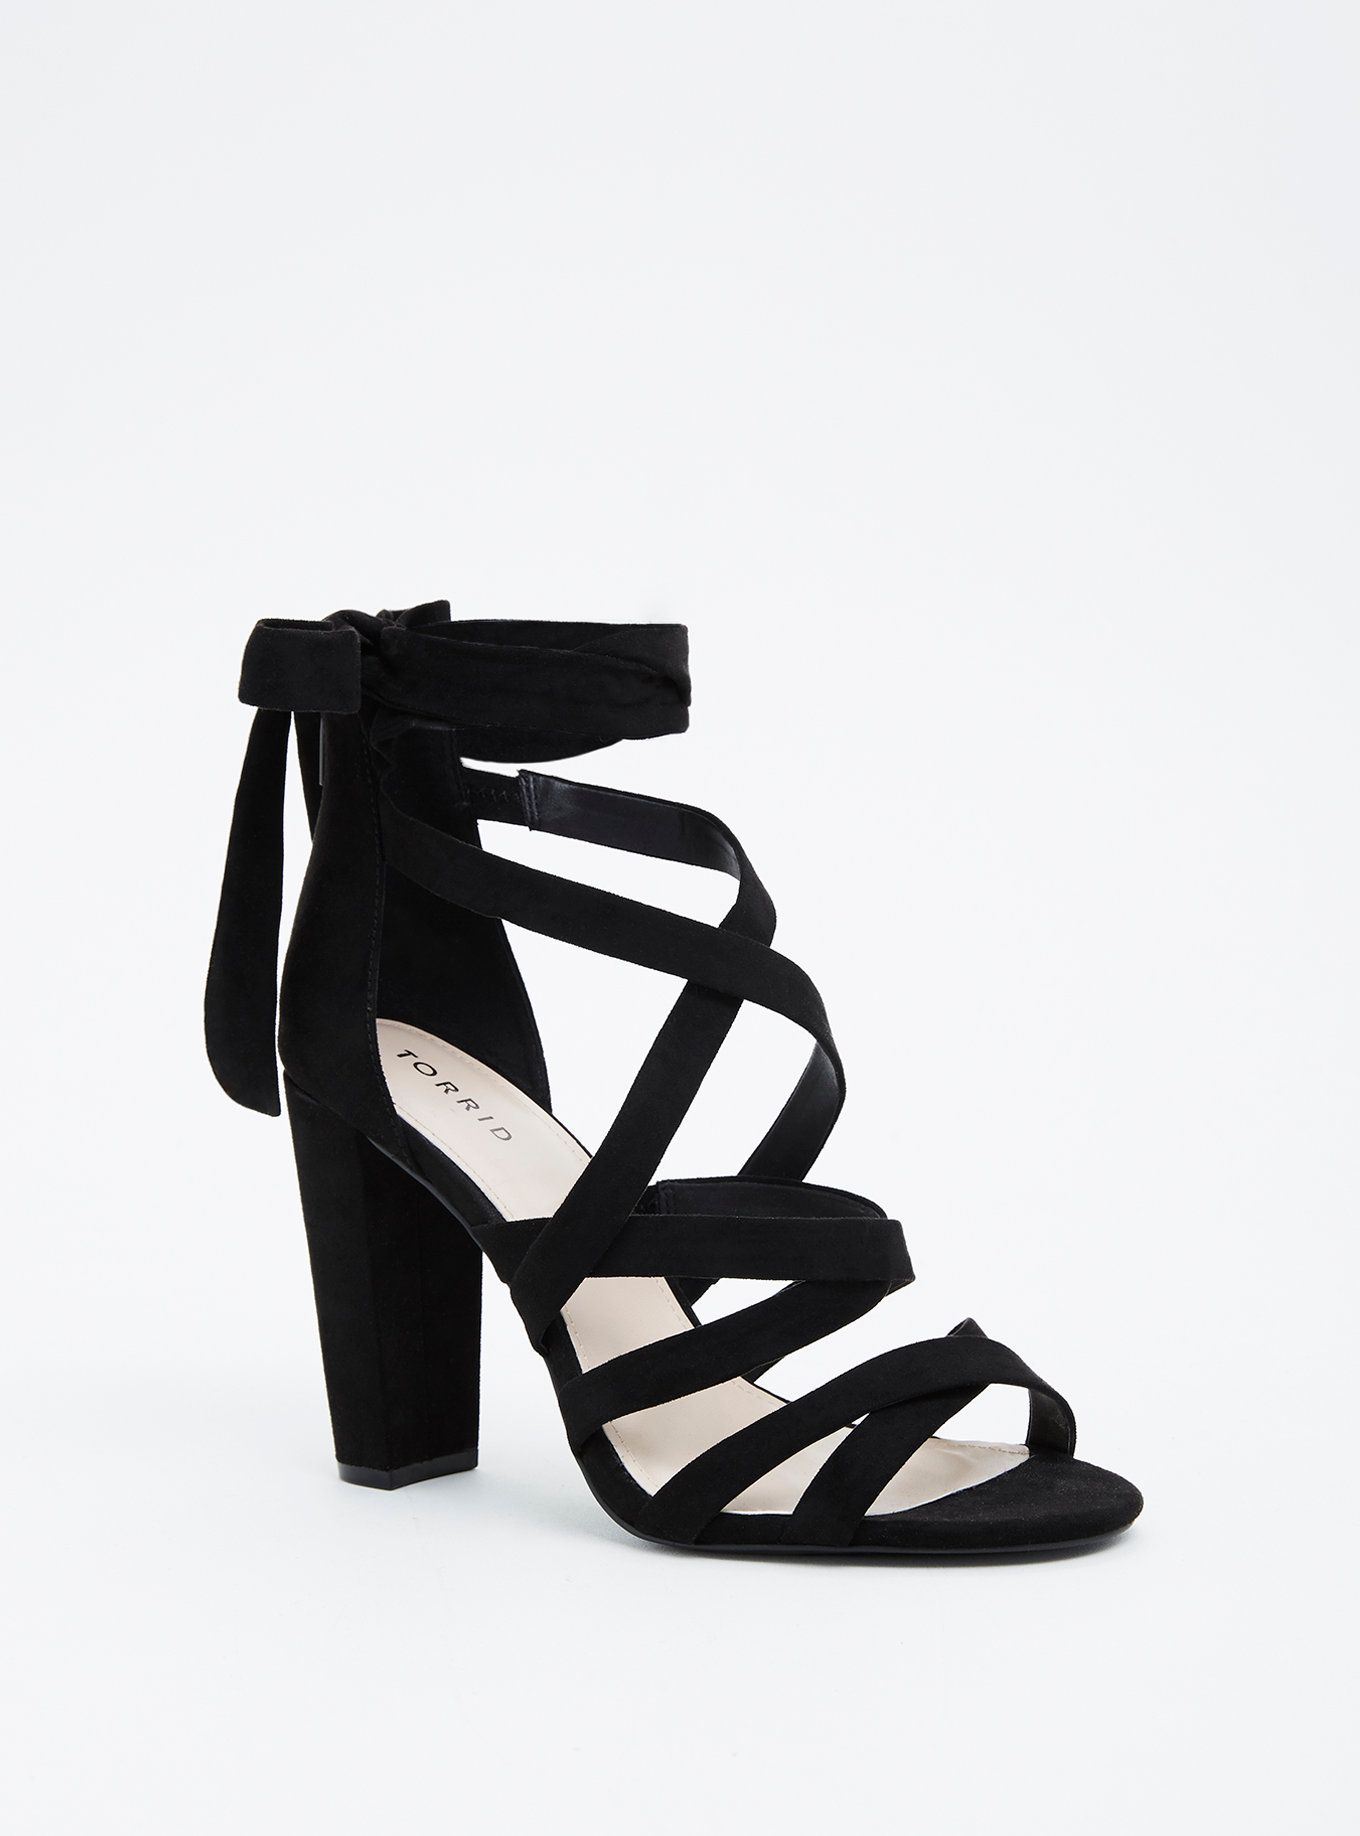 c34dfc5d28 Black Strappy Lace-Up Heel Sandal (Wide Width) | Plus Size and ...